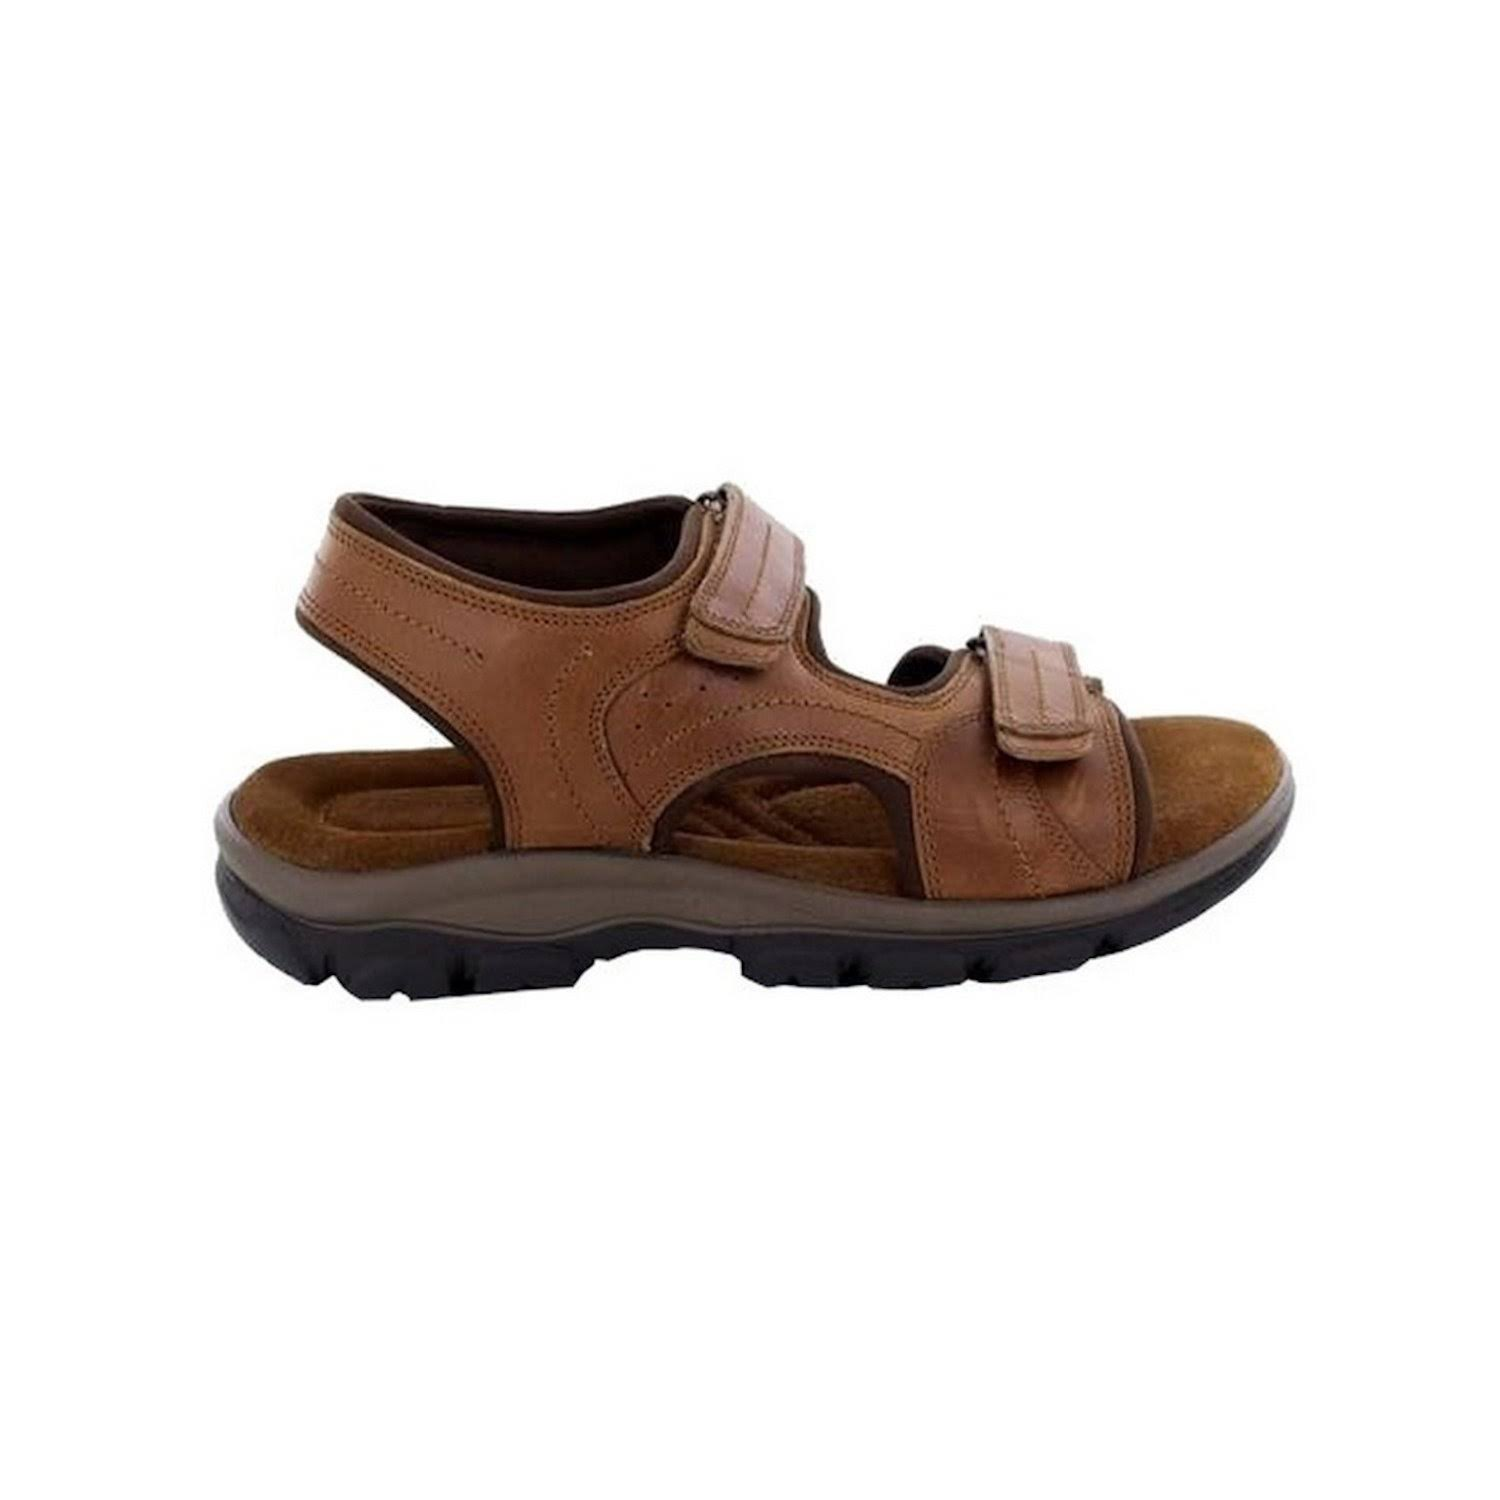 Roamers Mens Leather Sandals Twin Touch Fastening Padded Suede Sock Shoes Tan UK 7  Xqn0Xd